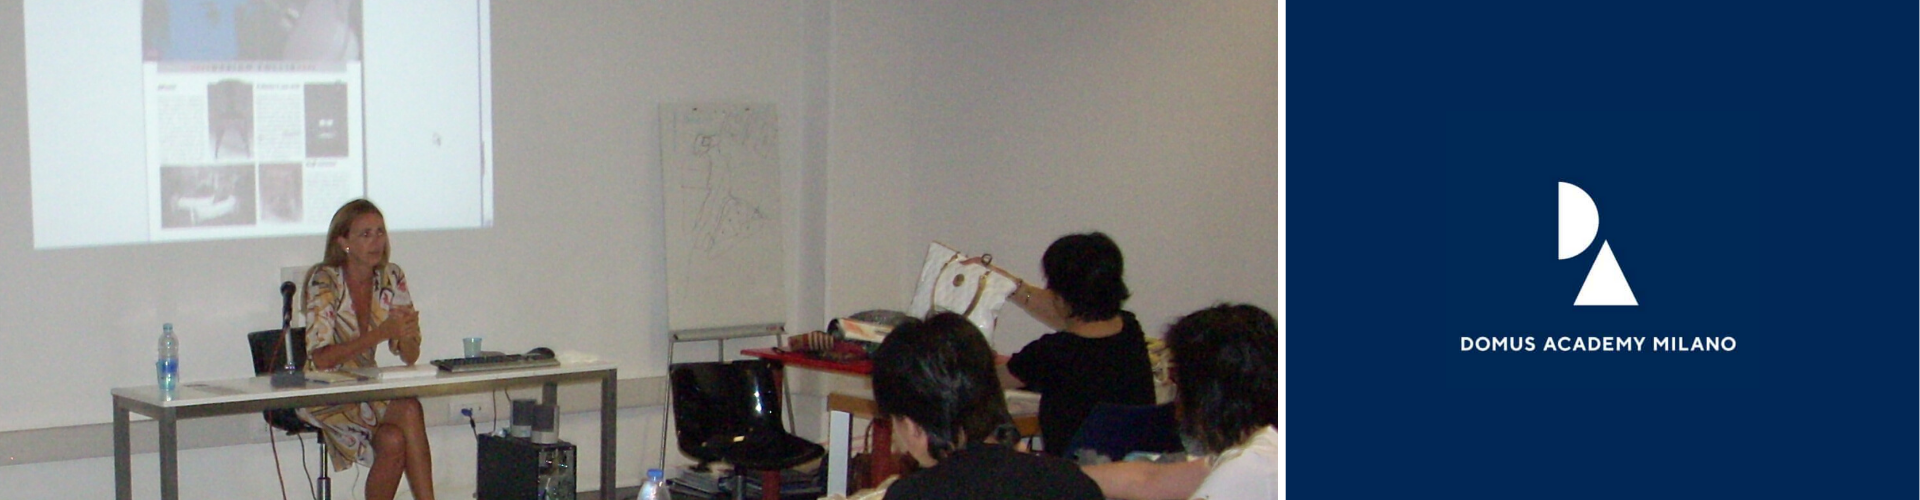 <span>Domus Academy Milano </span>–  Katya Fernandez  hold a <span>Fashion Accessories'  Seminar</span> for Hong Konghese students. Oct/2009